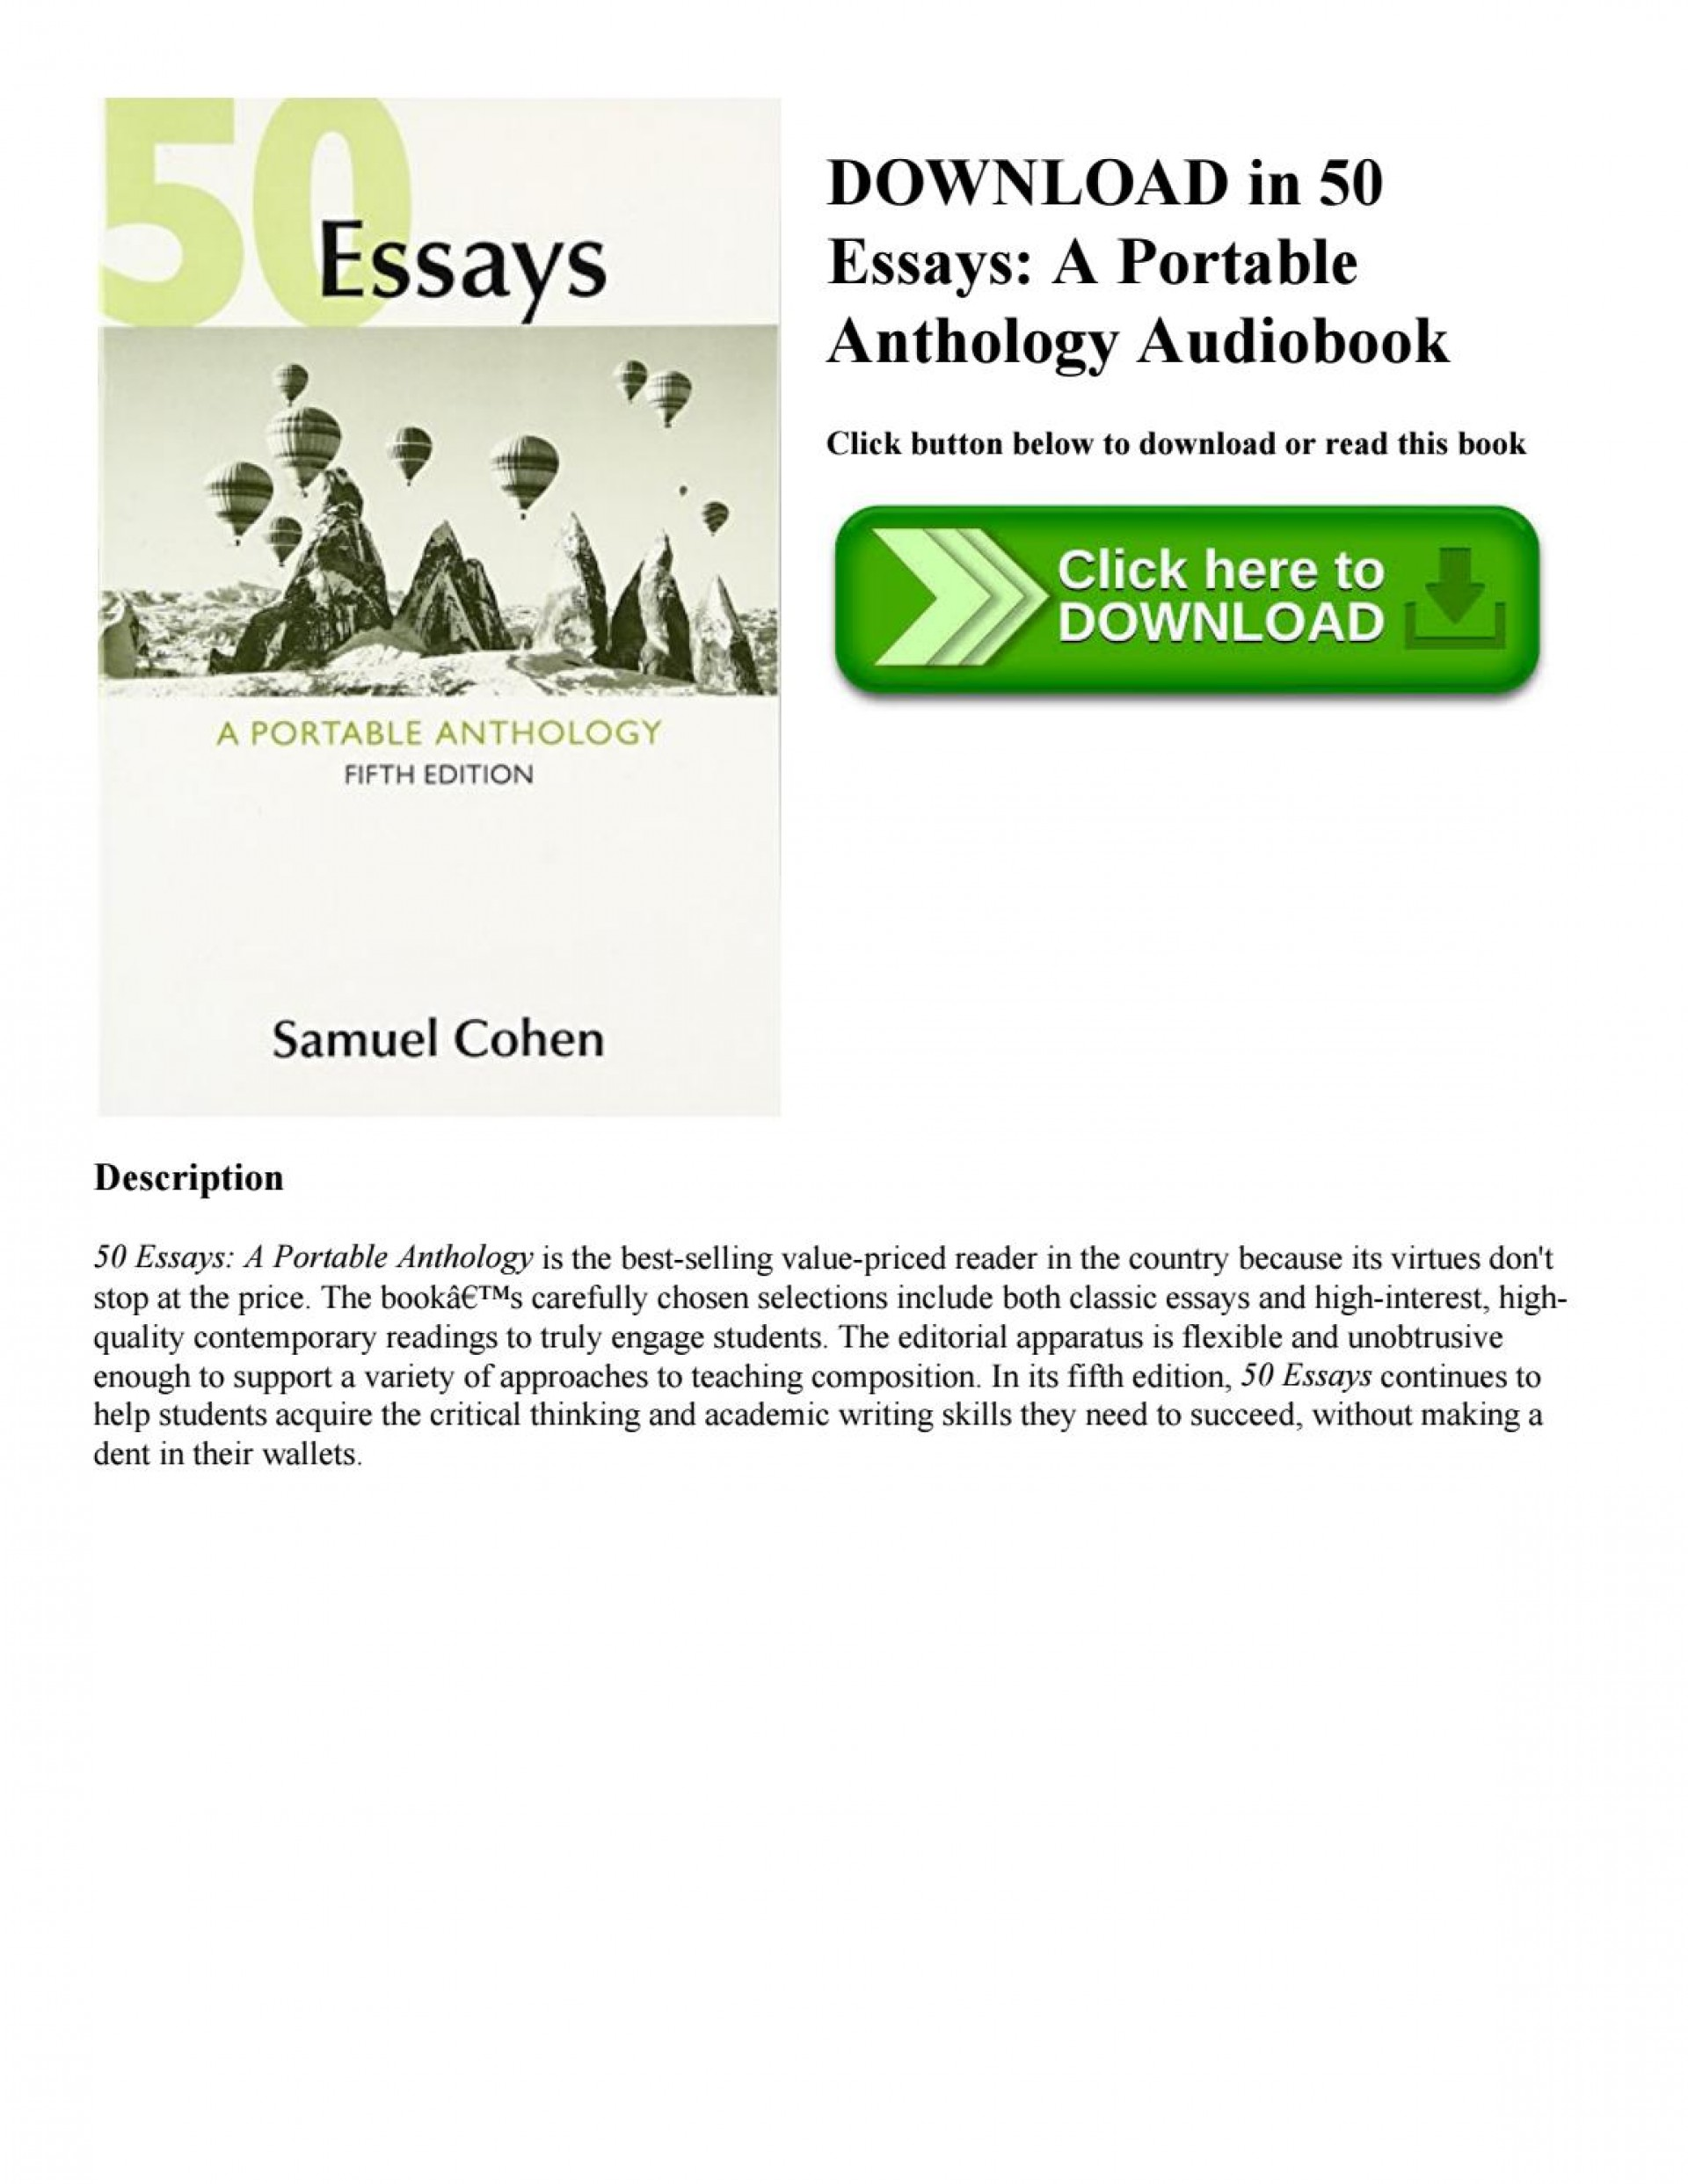 006 Essays 5th Edition Essay Example Page 1 Imposing 50 Fifty Great Pdf Free A Portable Anthology Ebook 1920